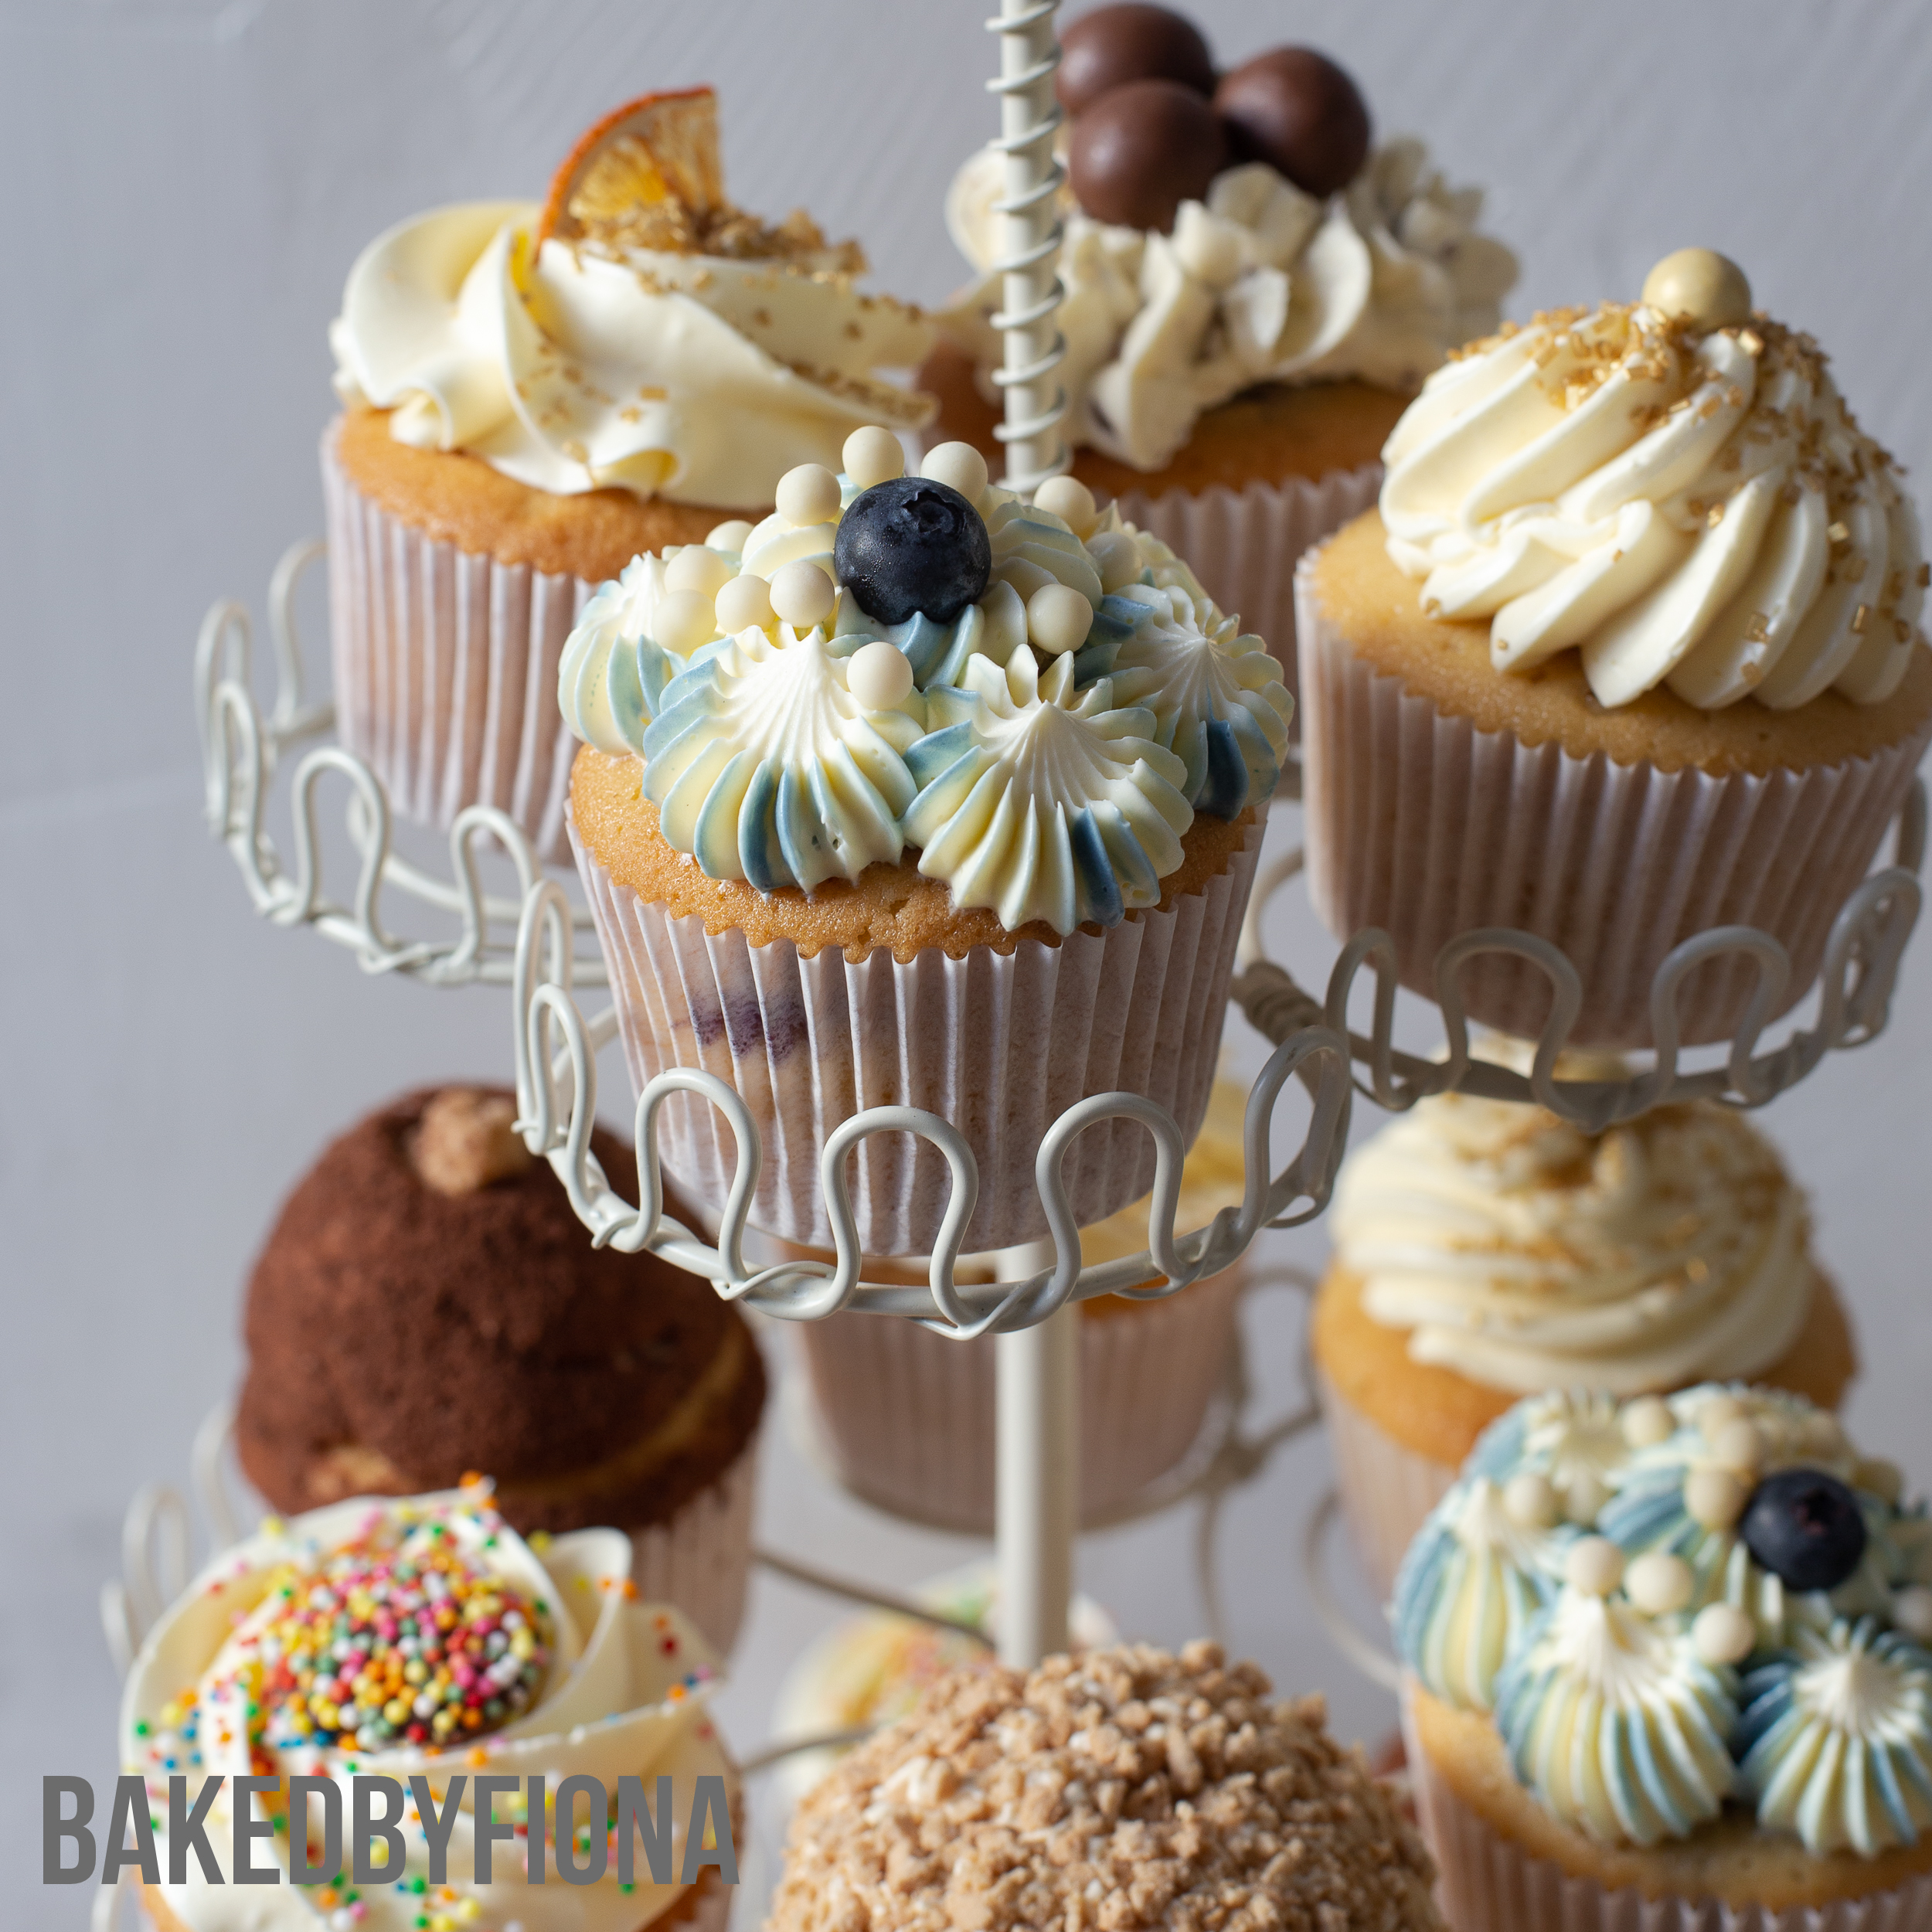 Sydney Cakes, Baked by Fiona gourmet cupcakes